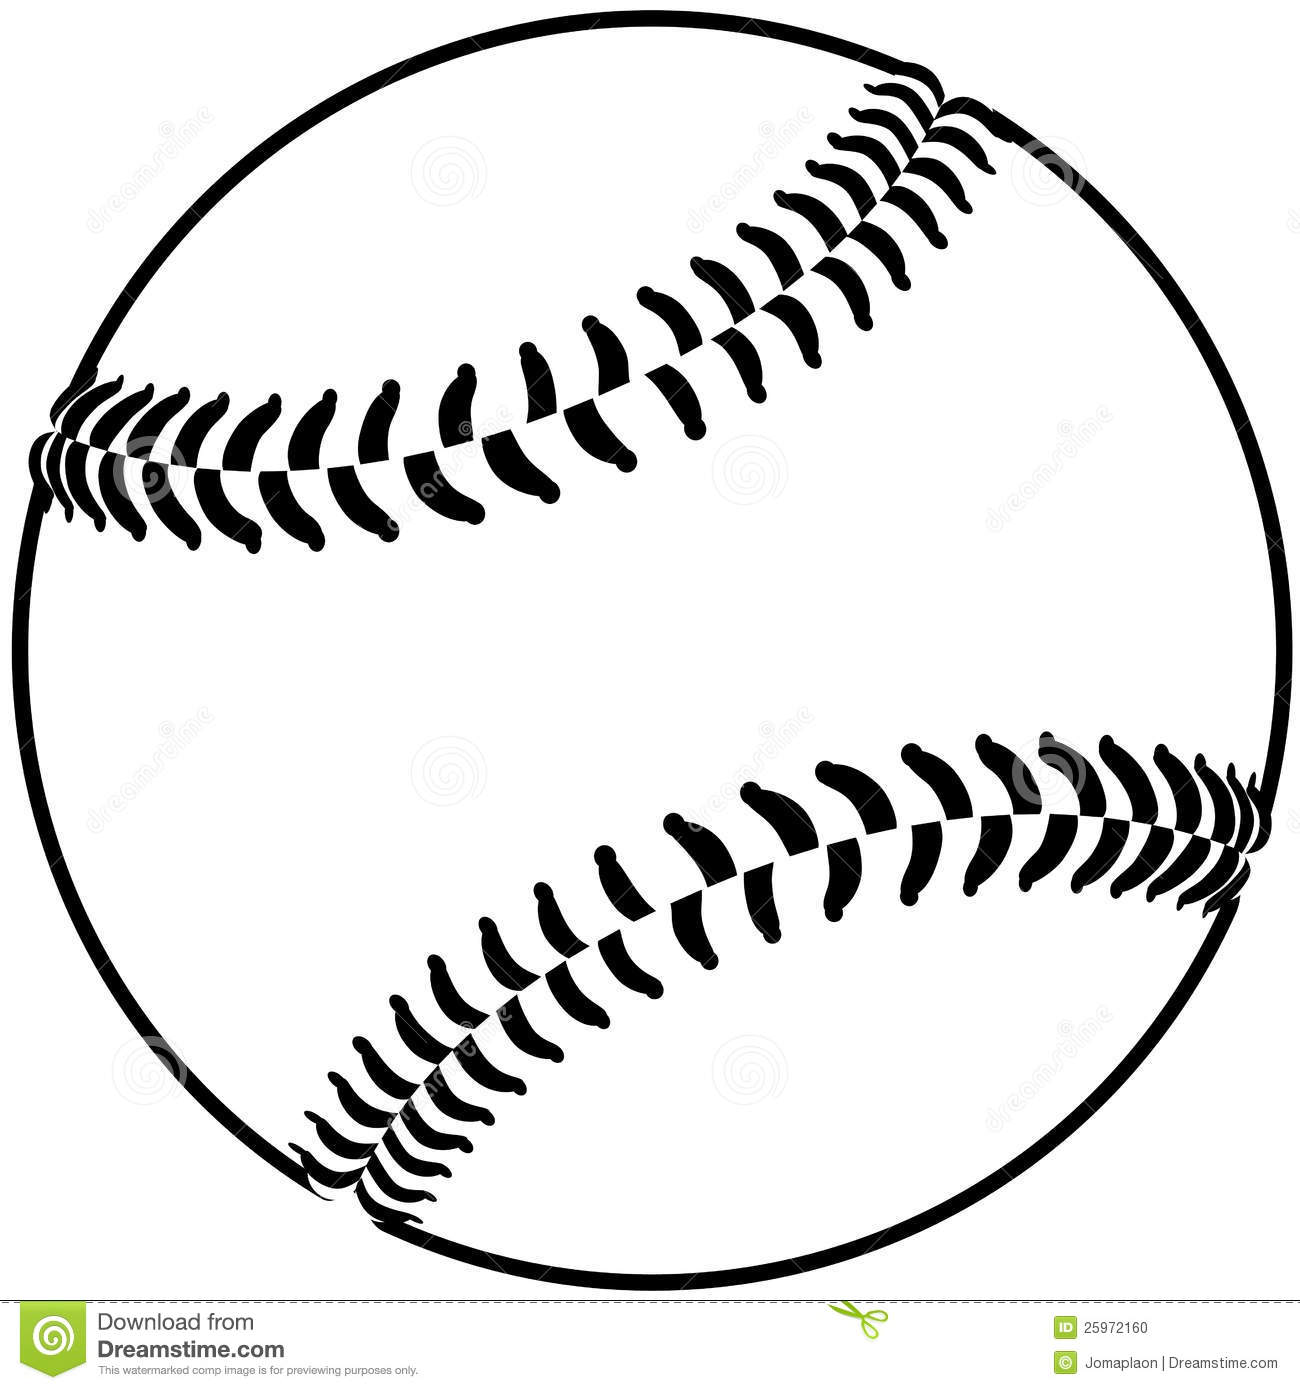 1300x1390 Baseball clipart bl - Baseball Clipart Black And White